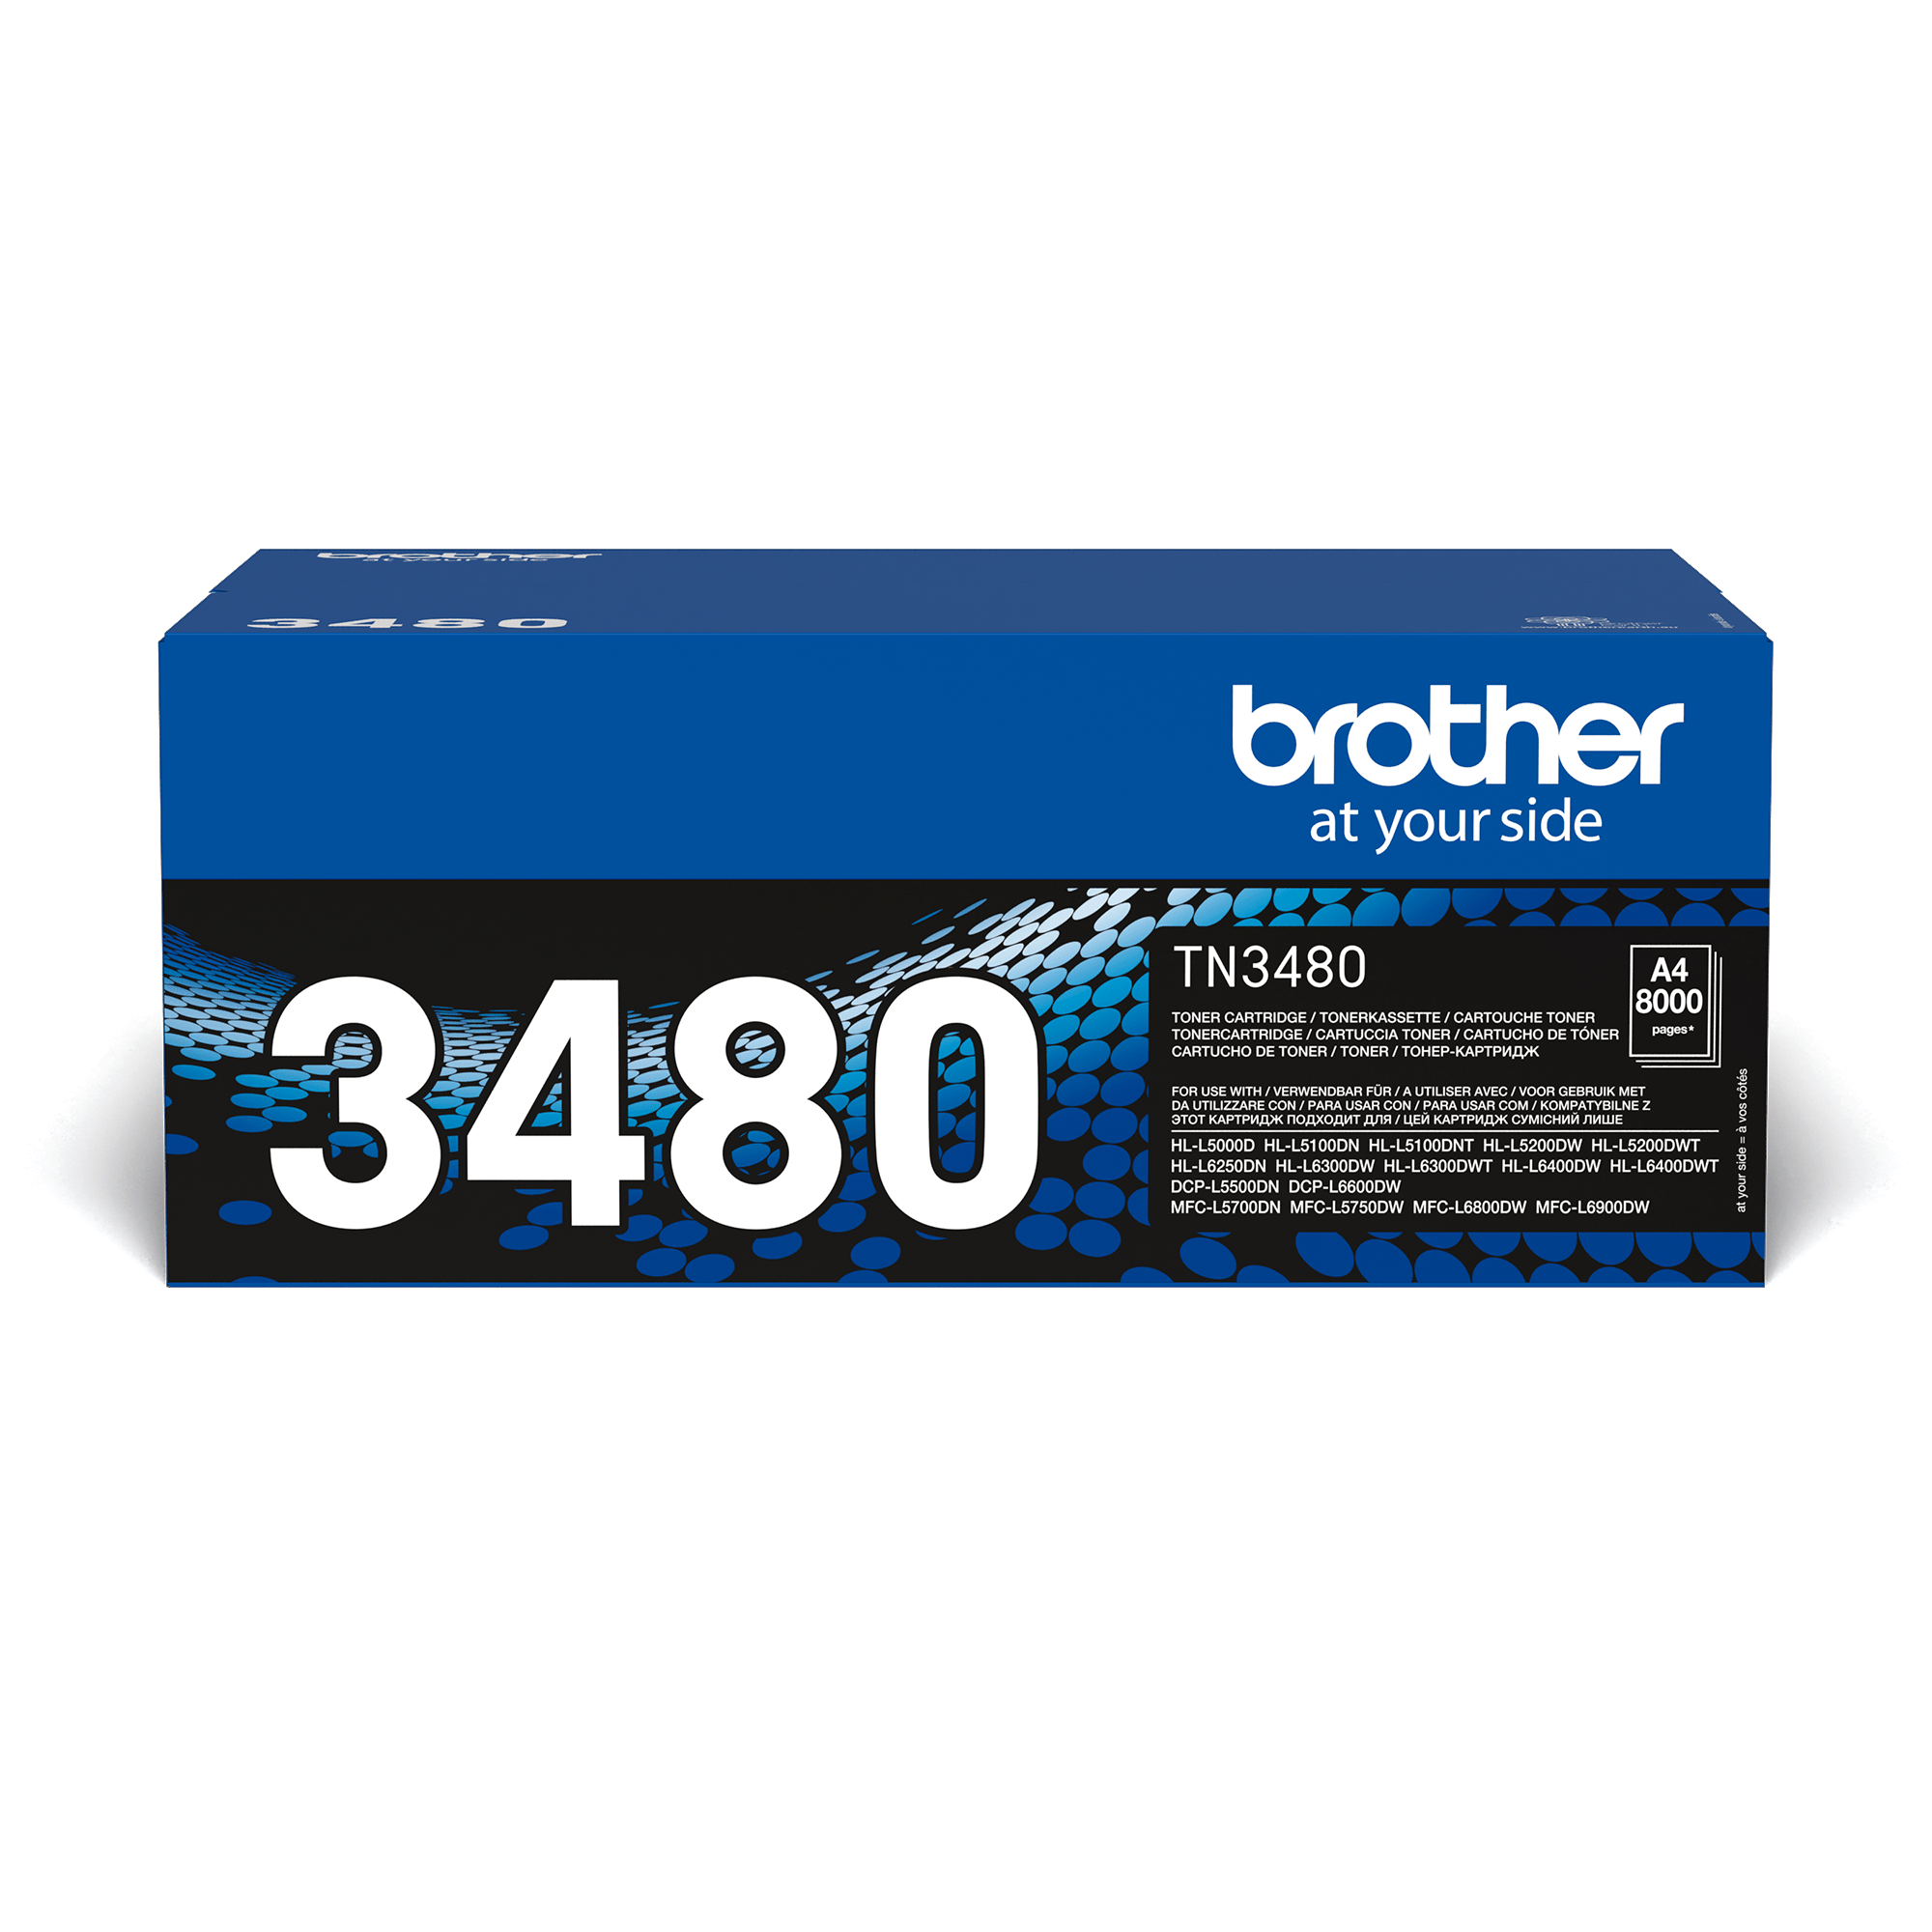 TN-3480 toner noir d'origine Brother à haut rendement